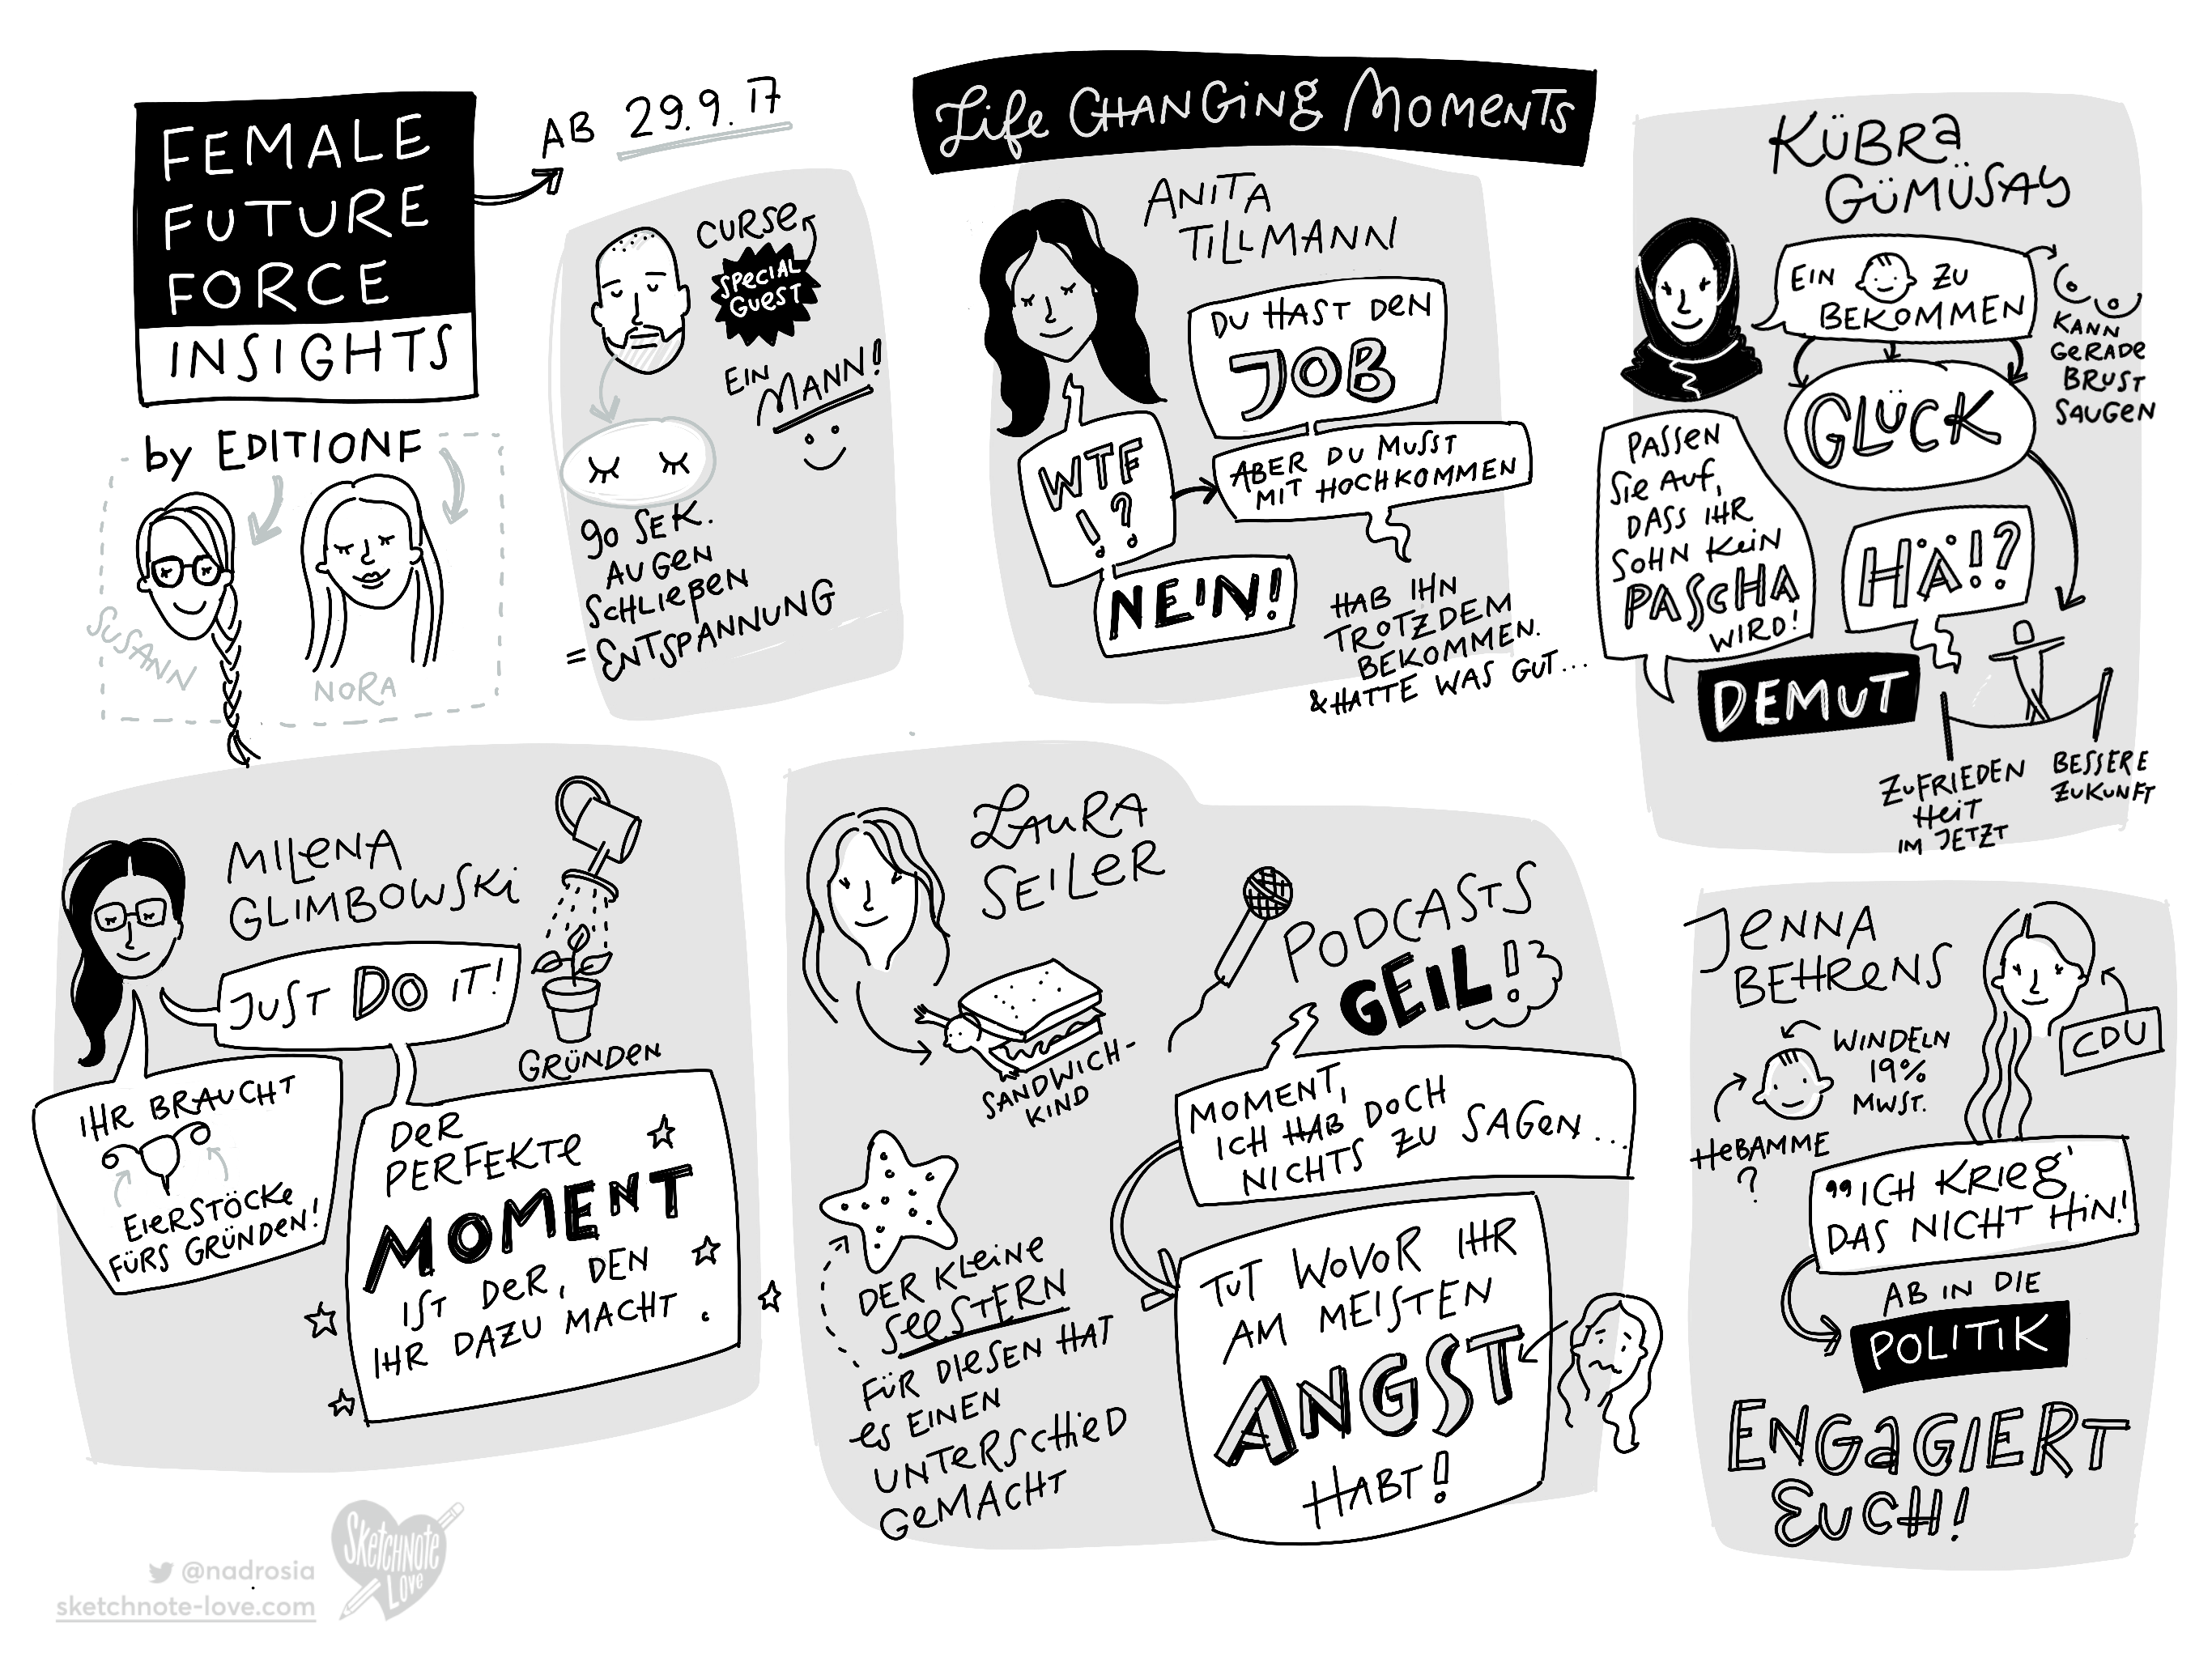 Sketchnotes Female Future Force